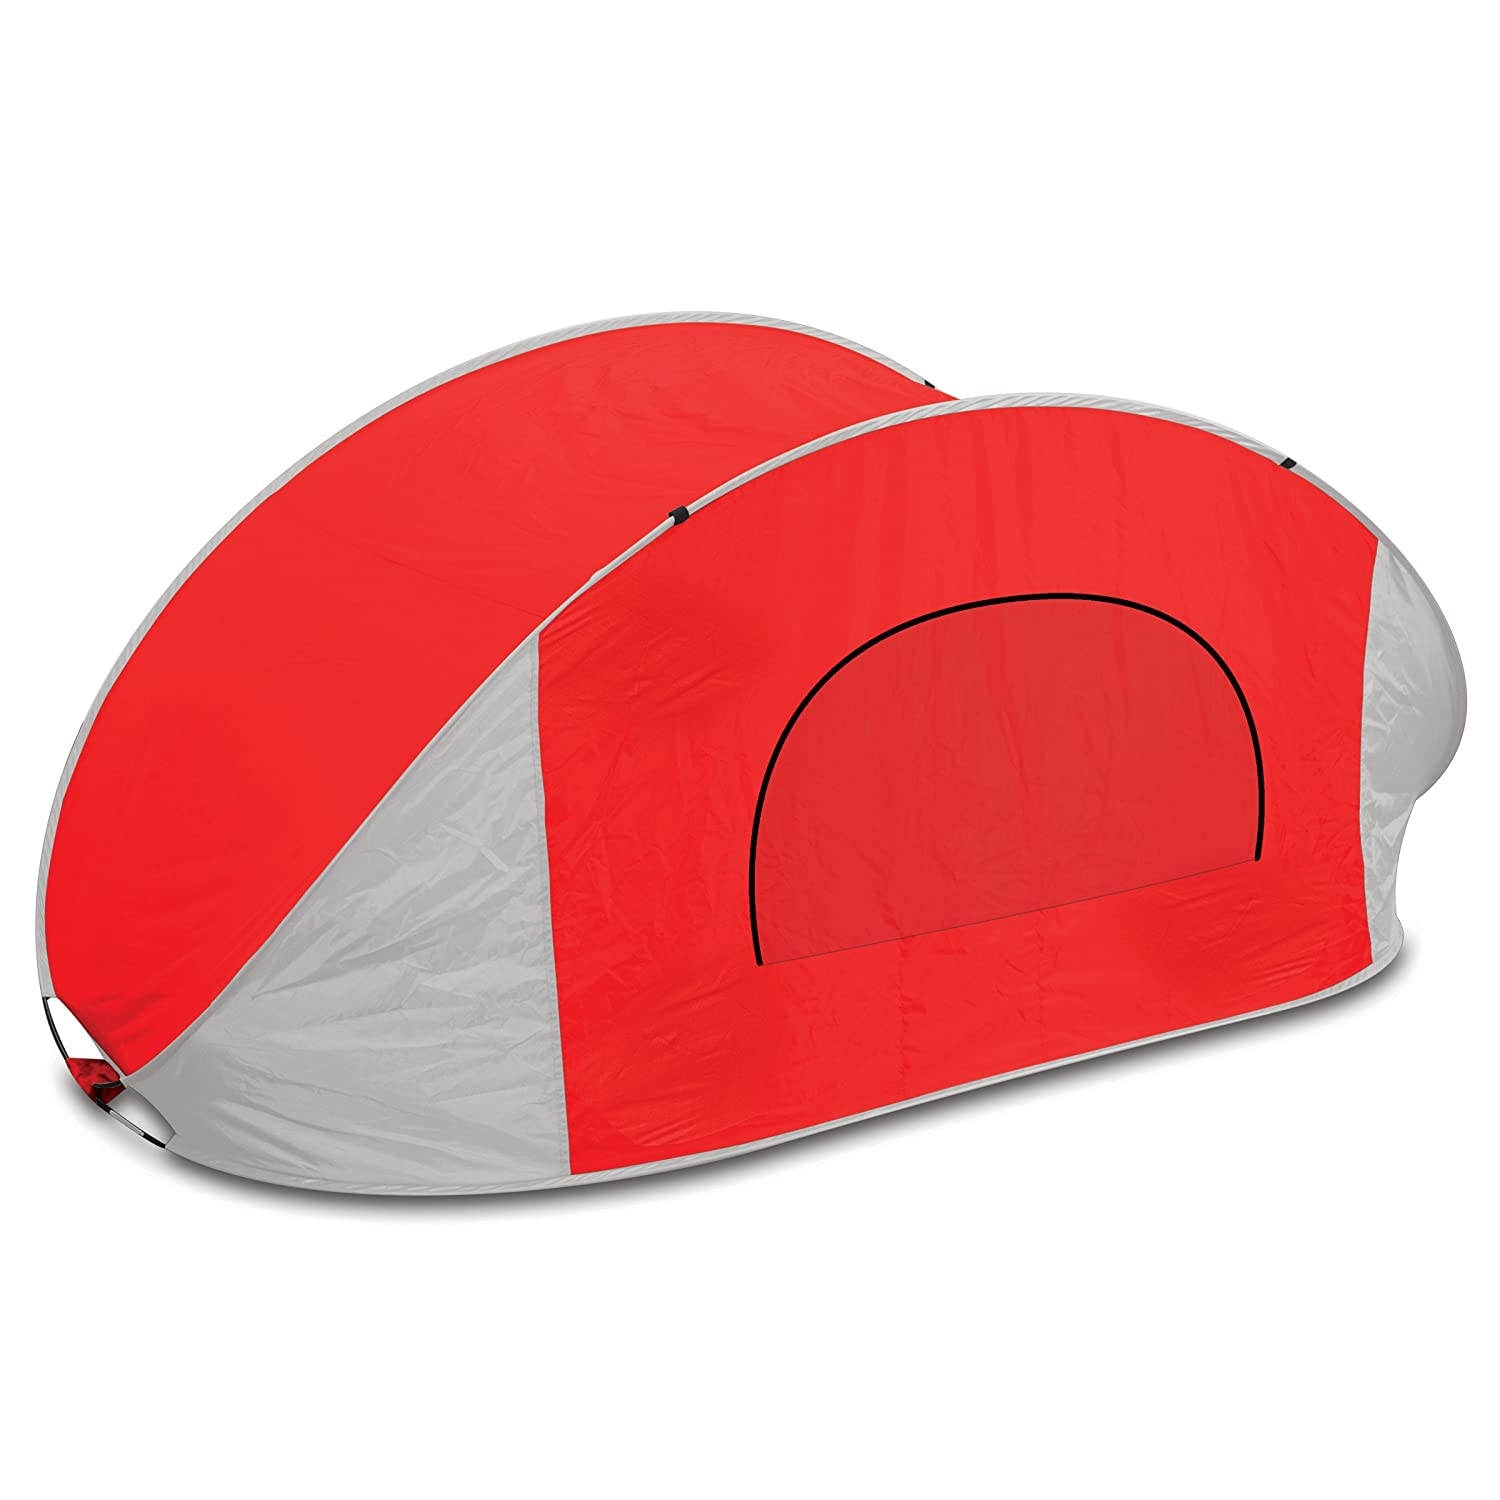 Amazon.com Picnic Time Manta Portable Pop-Up Sun/Wind Shelter Red Garden u0026 Outdoor  sc 1 st  Amazon.com & Amazon.com: Picnic Time Manta Portable Pop-Up Sun/Wind Shelter ...